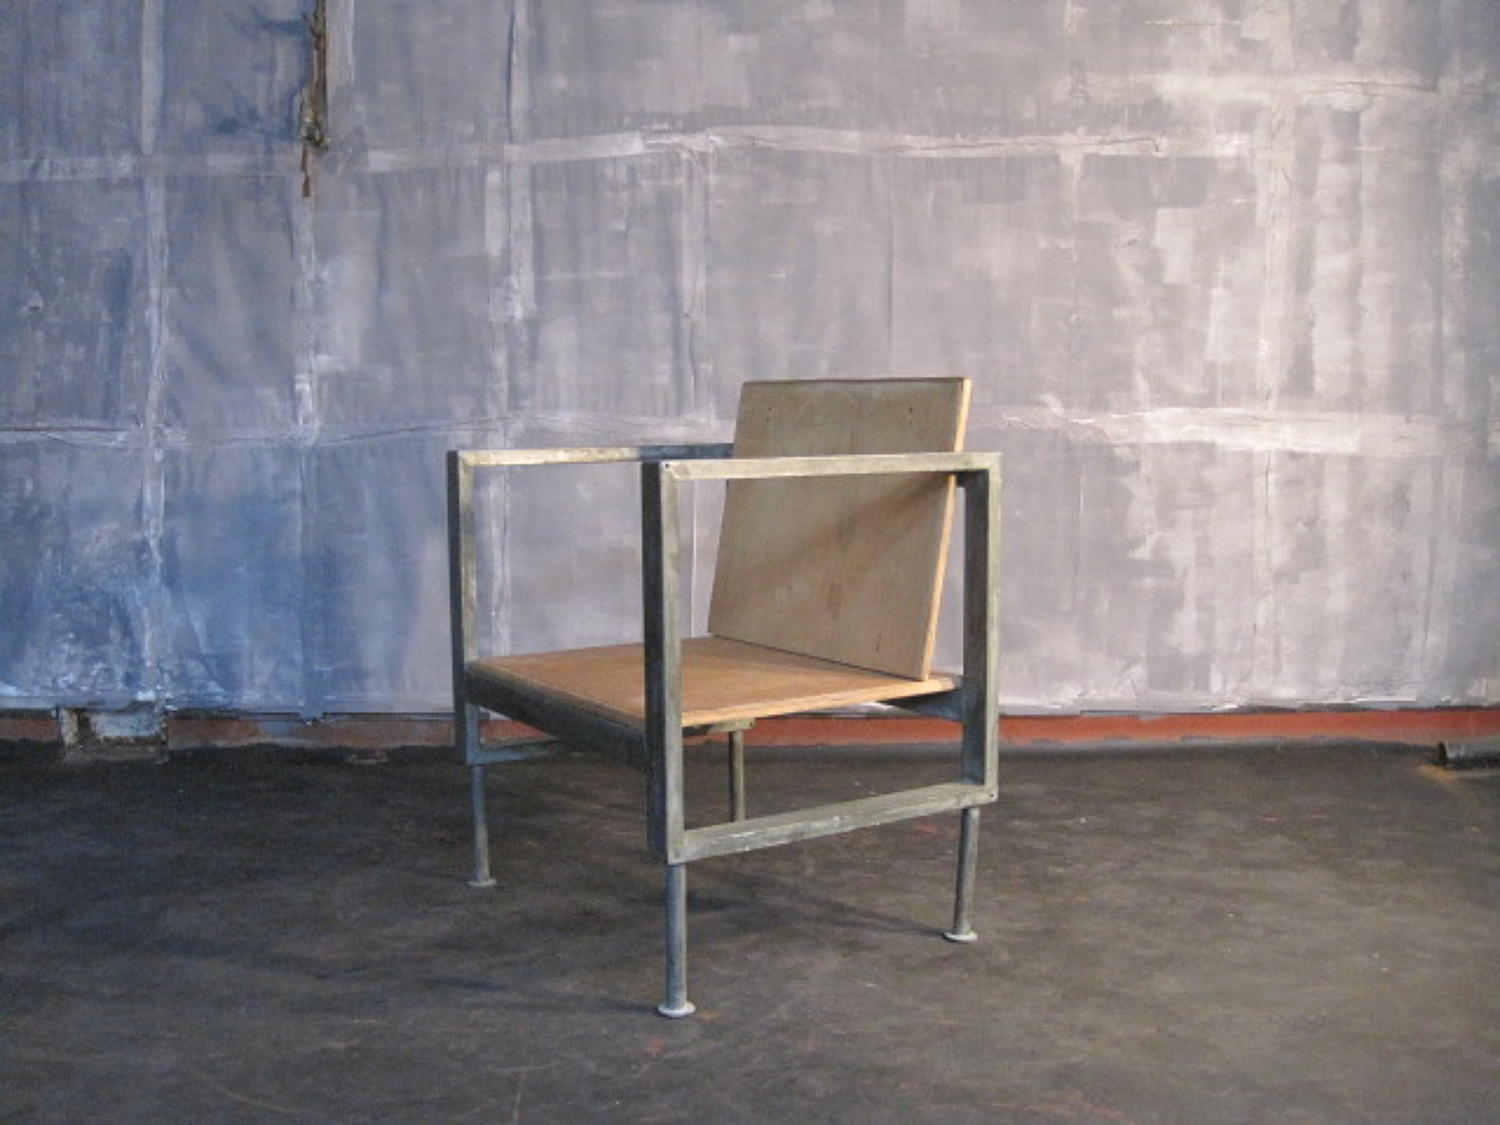 Industrial steel and plywood chair